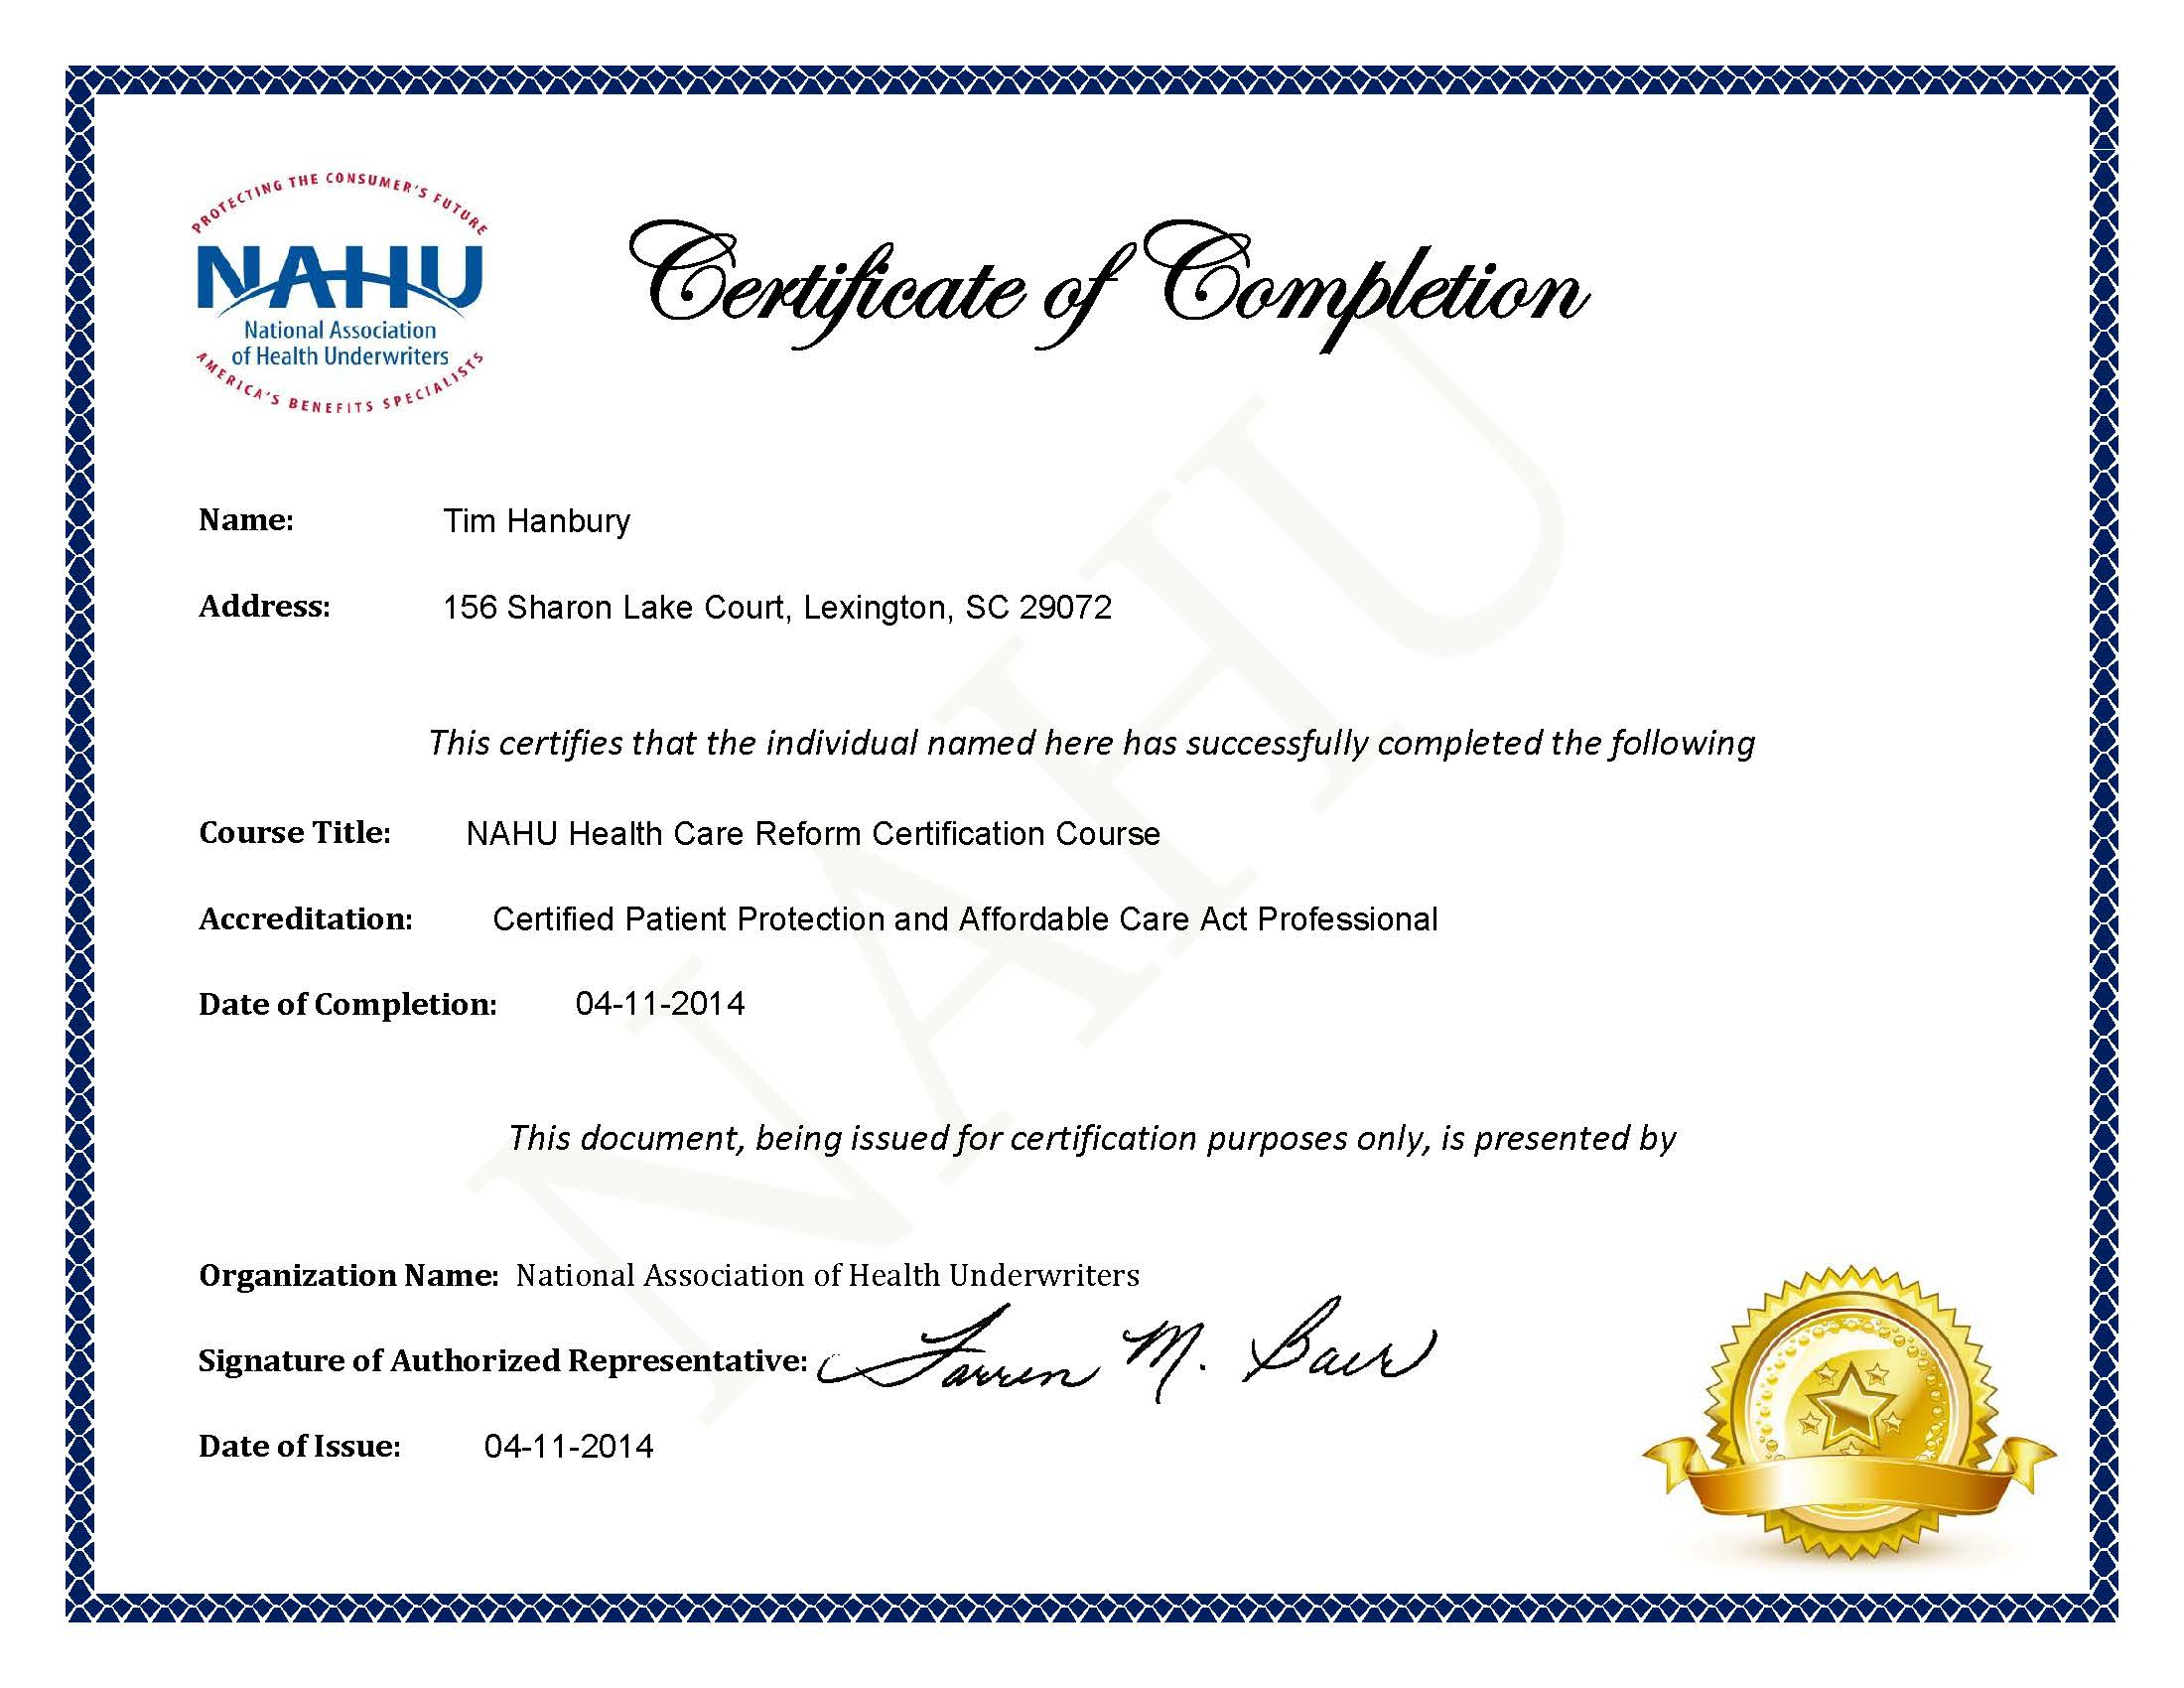 Hanbury group tim hanbury registered health underwriter rhu certificate 1betcityfo Image collections